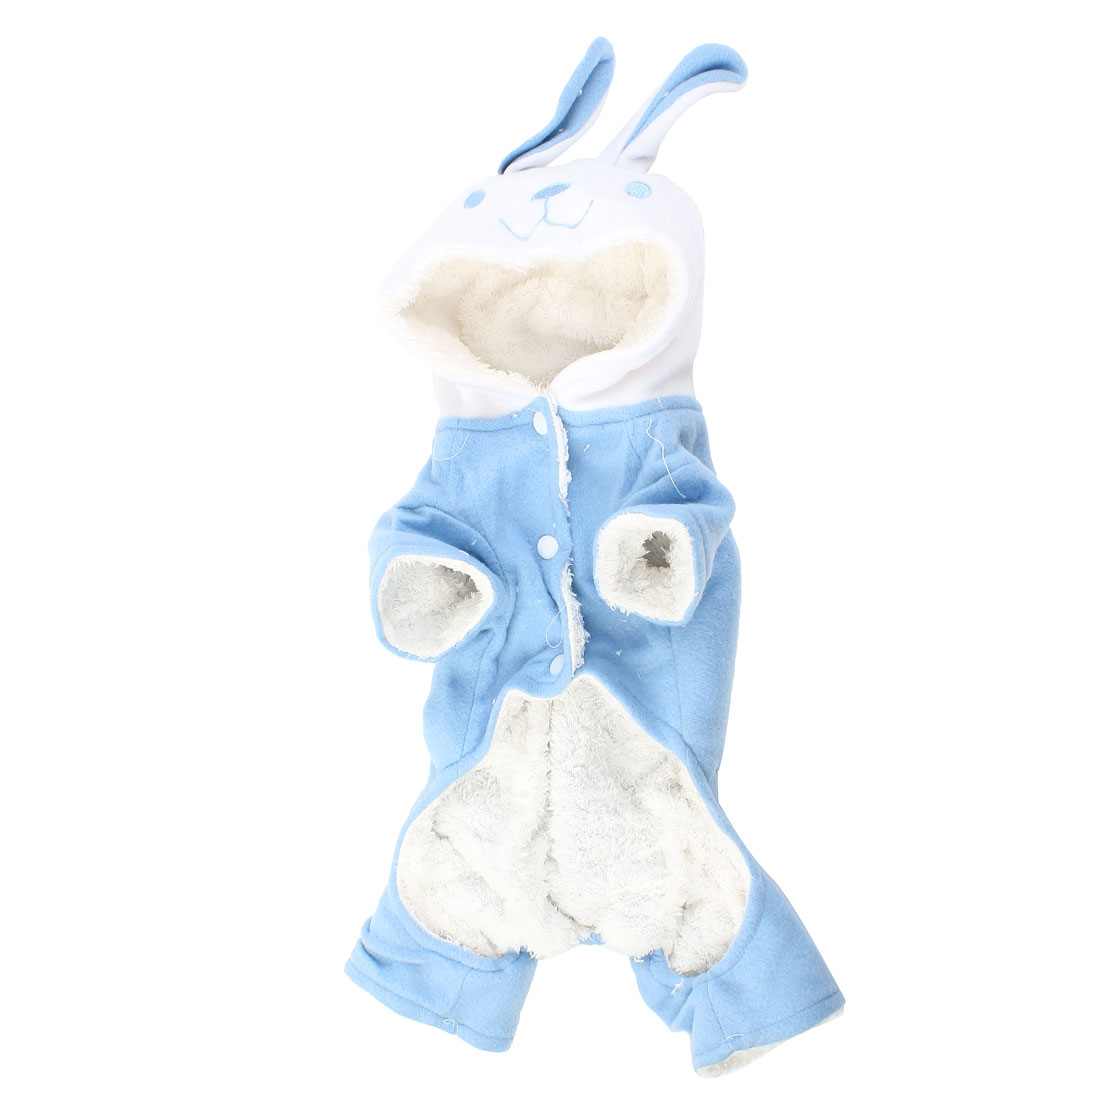 Winter Warm Rabbit Design Pet Dog Puppy Jumpsuit Overall Blue Size M